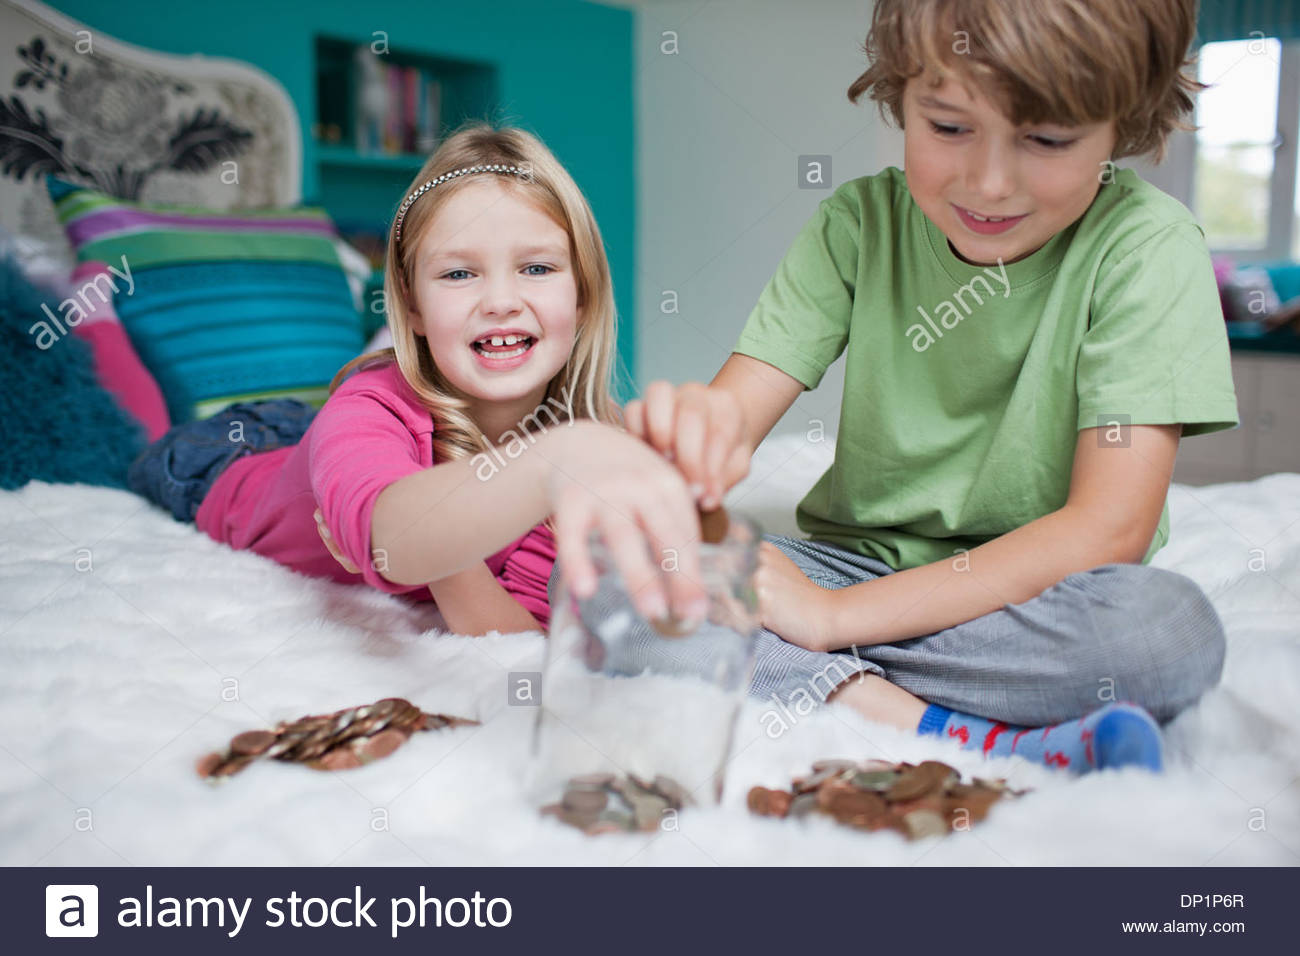 Brother and sister playing counting money in bedroom - Stock Image